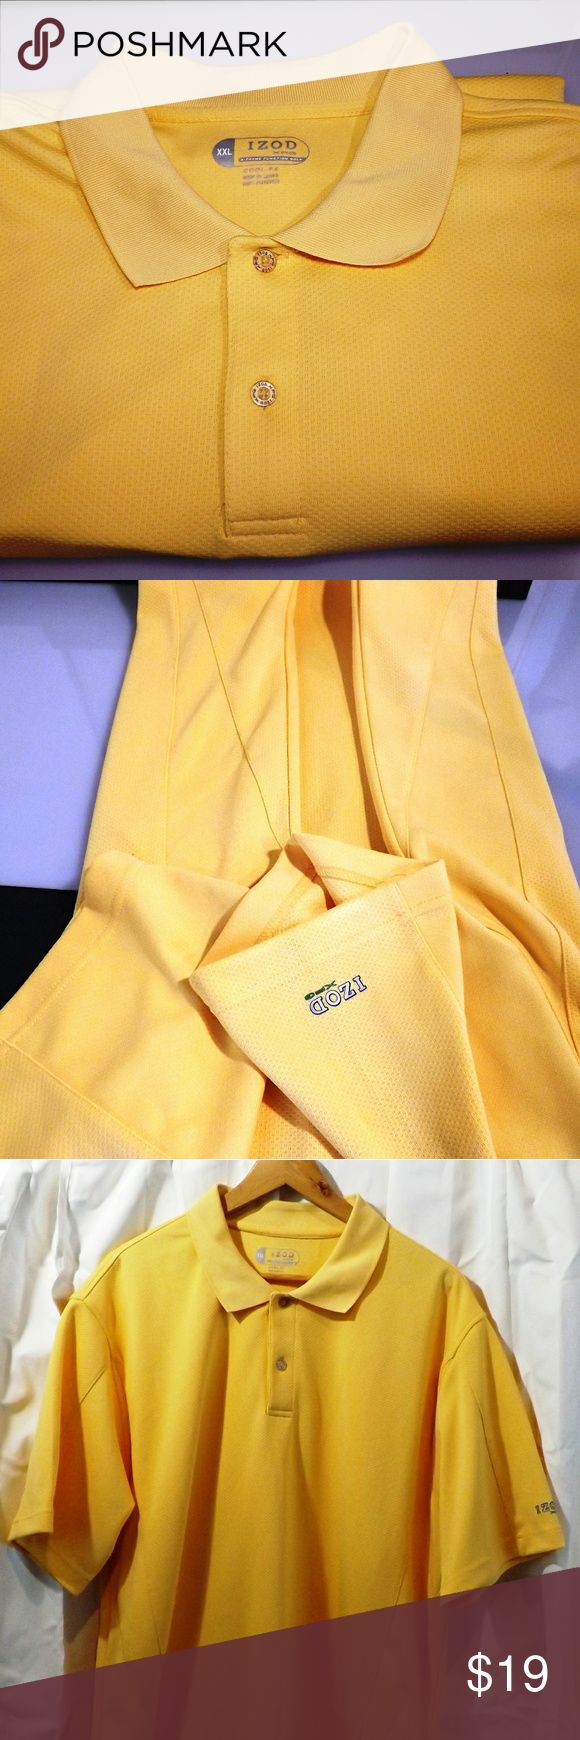 """IZOD Men Cool fx yellow logo on sleeve POLO shirt Up for sale is an IZOD Men's Yellow with Logo on sleeve Golf Polo Shirt Size XXL. The shirt is Pre-Owned and in excellent condition.   Brand: IZOD  Size: XXL  Color: Yellow with Logo on sleeve  Material: 100% Polyester  Sleeves: Short Sleeves  Pockets: NO  Hood: NO  Zipper/Buttons:2 Buttons  Measurements  Armpit to armpit: 26 1/2""""  Length from shoulder to base: 31 1/2""""   Thanks for looking! Please message me if you have any questions. Izod…"""